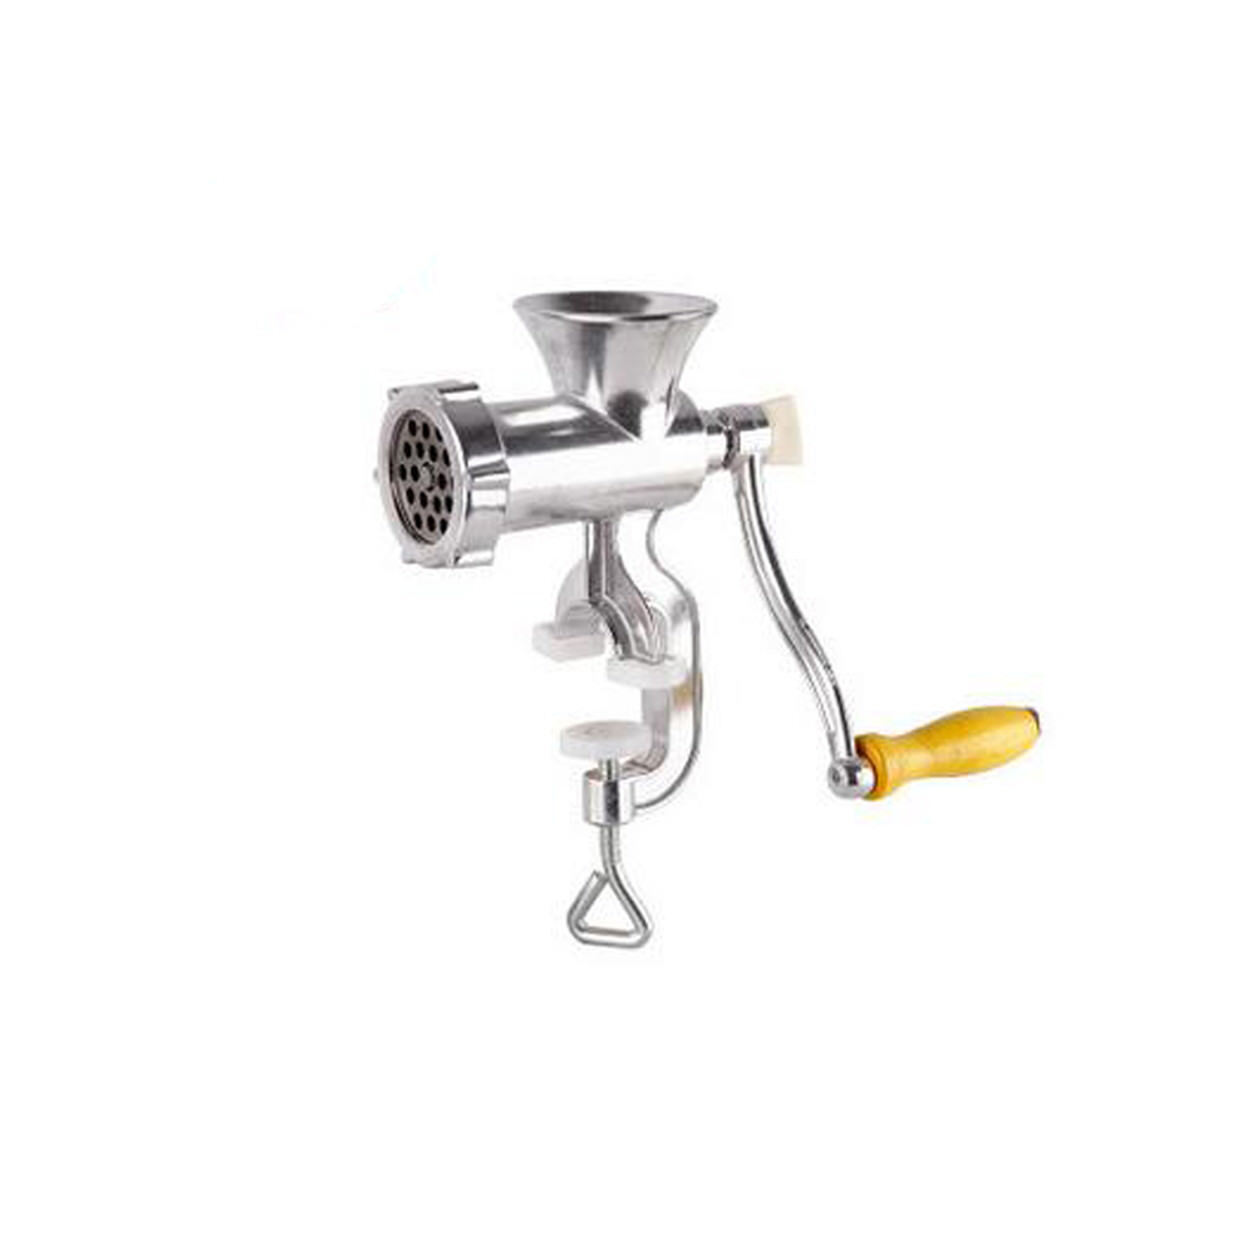 Heavy Duty Meat Mincer Grinder Manual Hand Operated